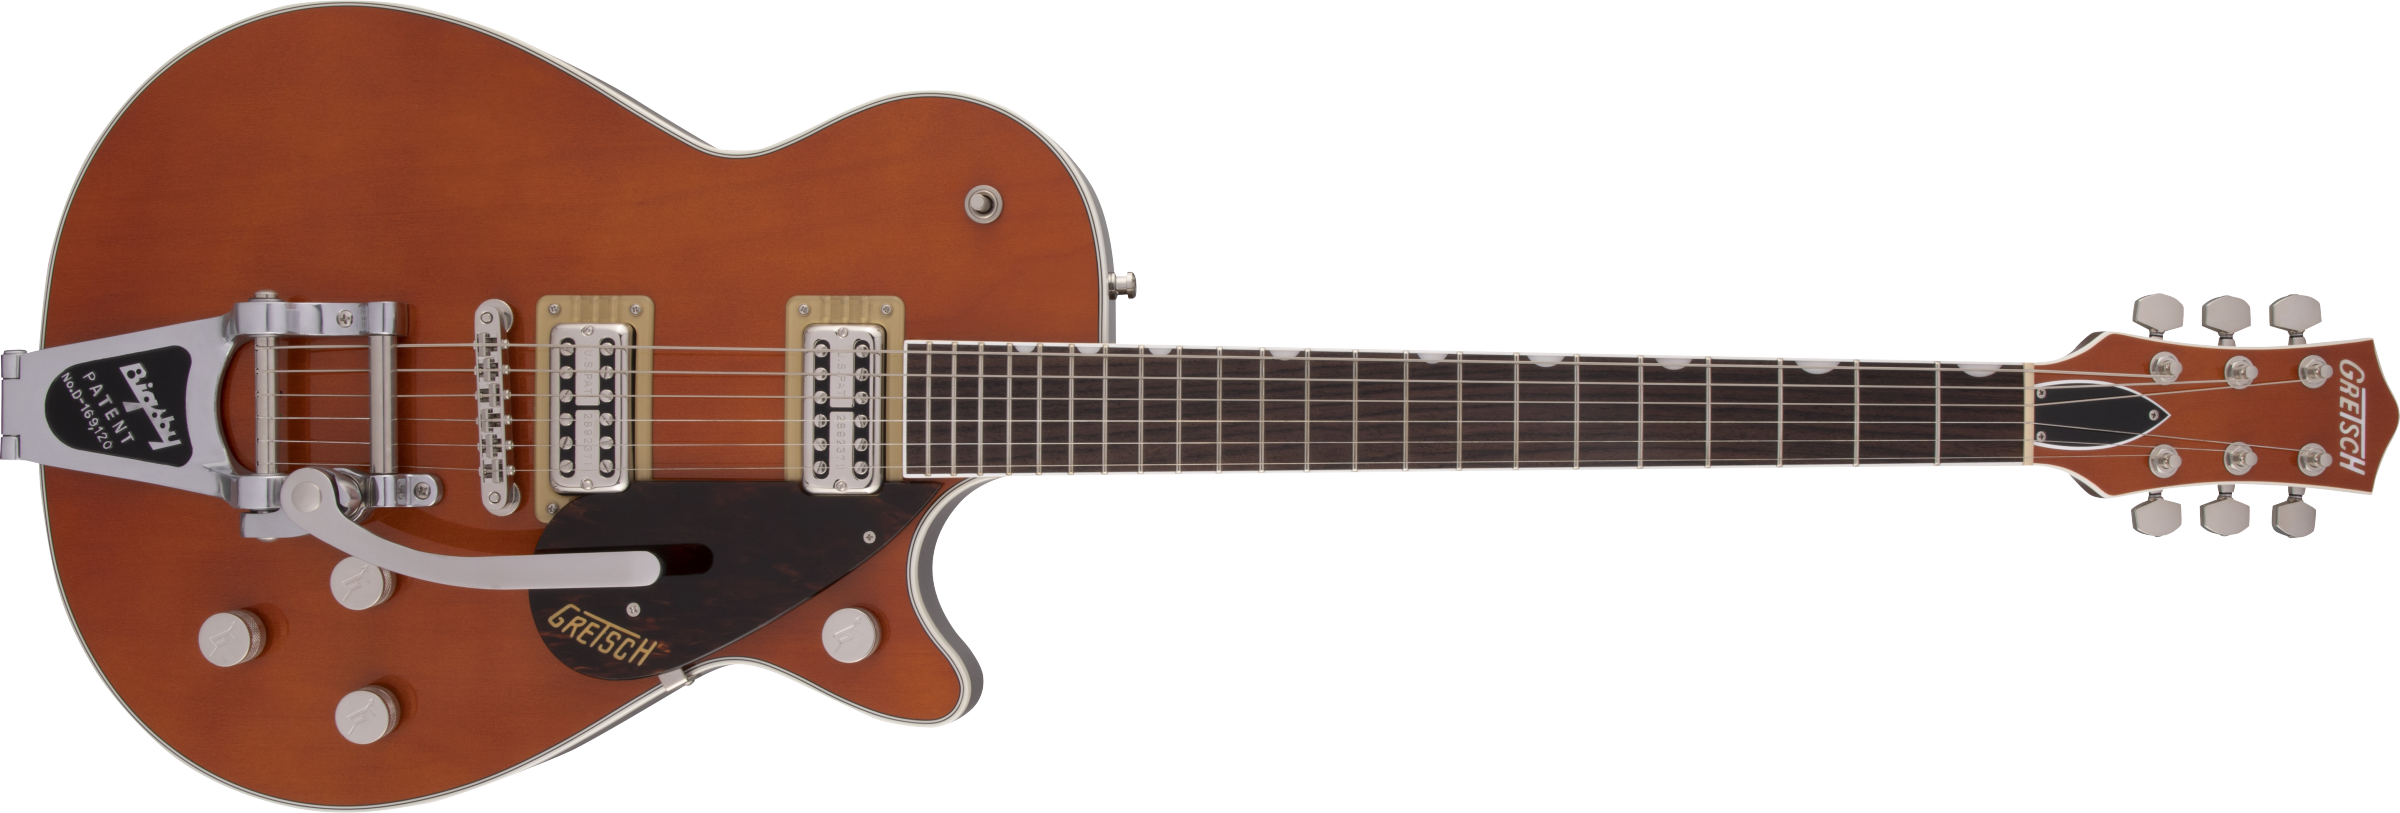 GRETSCH-G6128T-Players-Edition-Jet-FT-with-Bigsby-Rosewood-Fingerboard-Roundup-Orange-sku-571005145